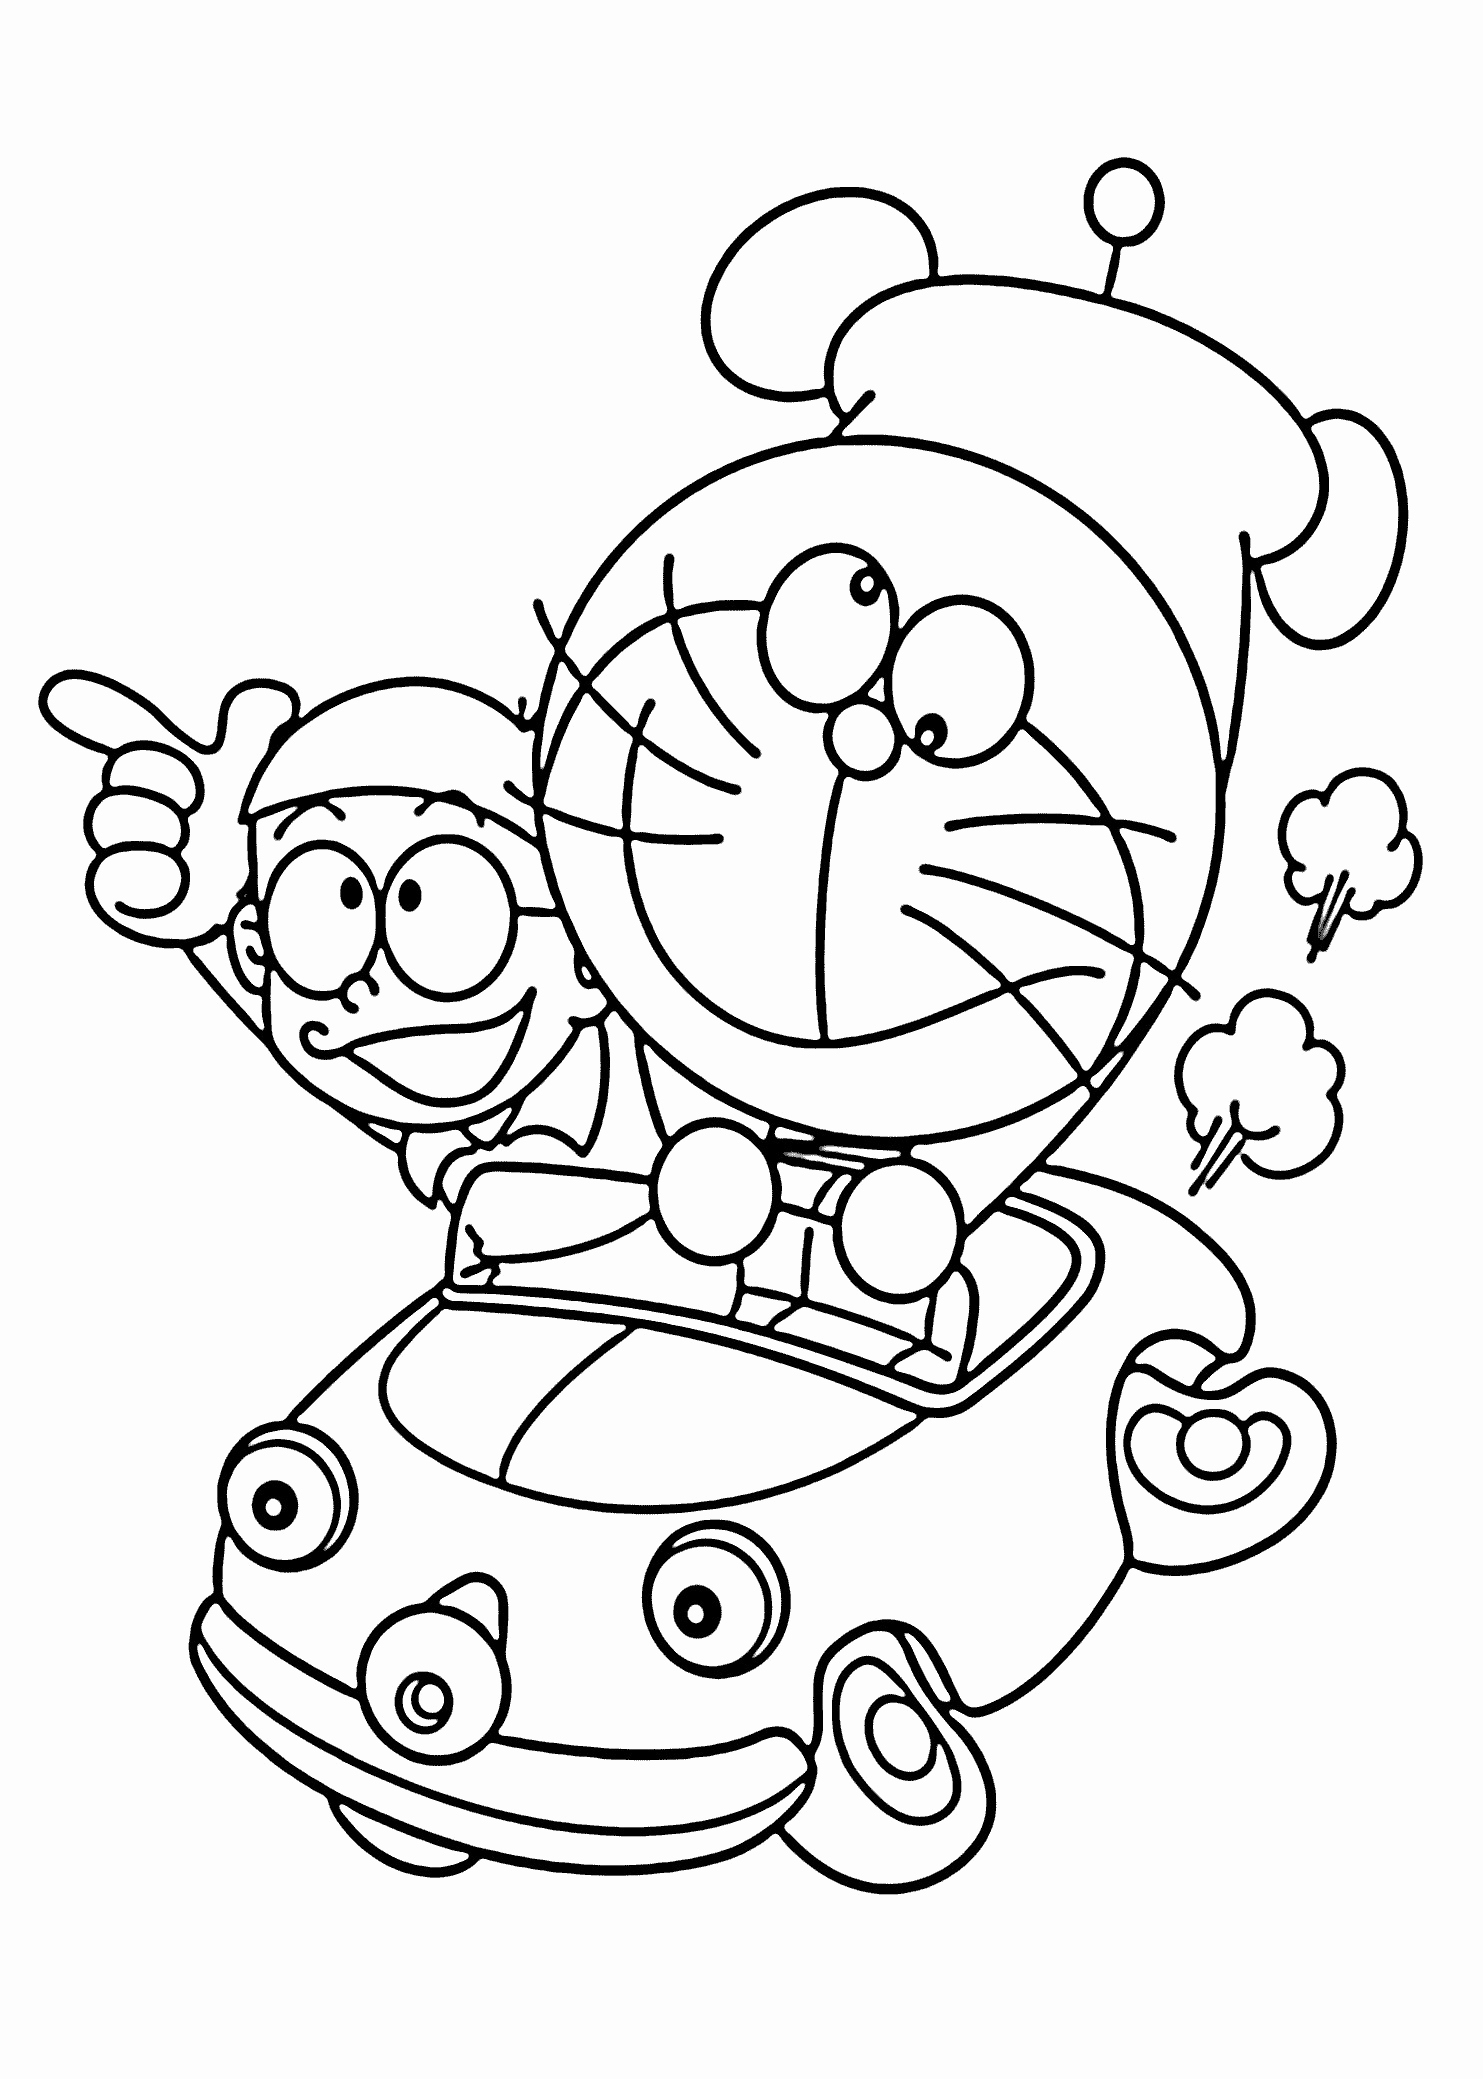 Hanukkah Kids Coloring Pages at GetColorings.com | Free printable ...